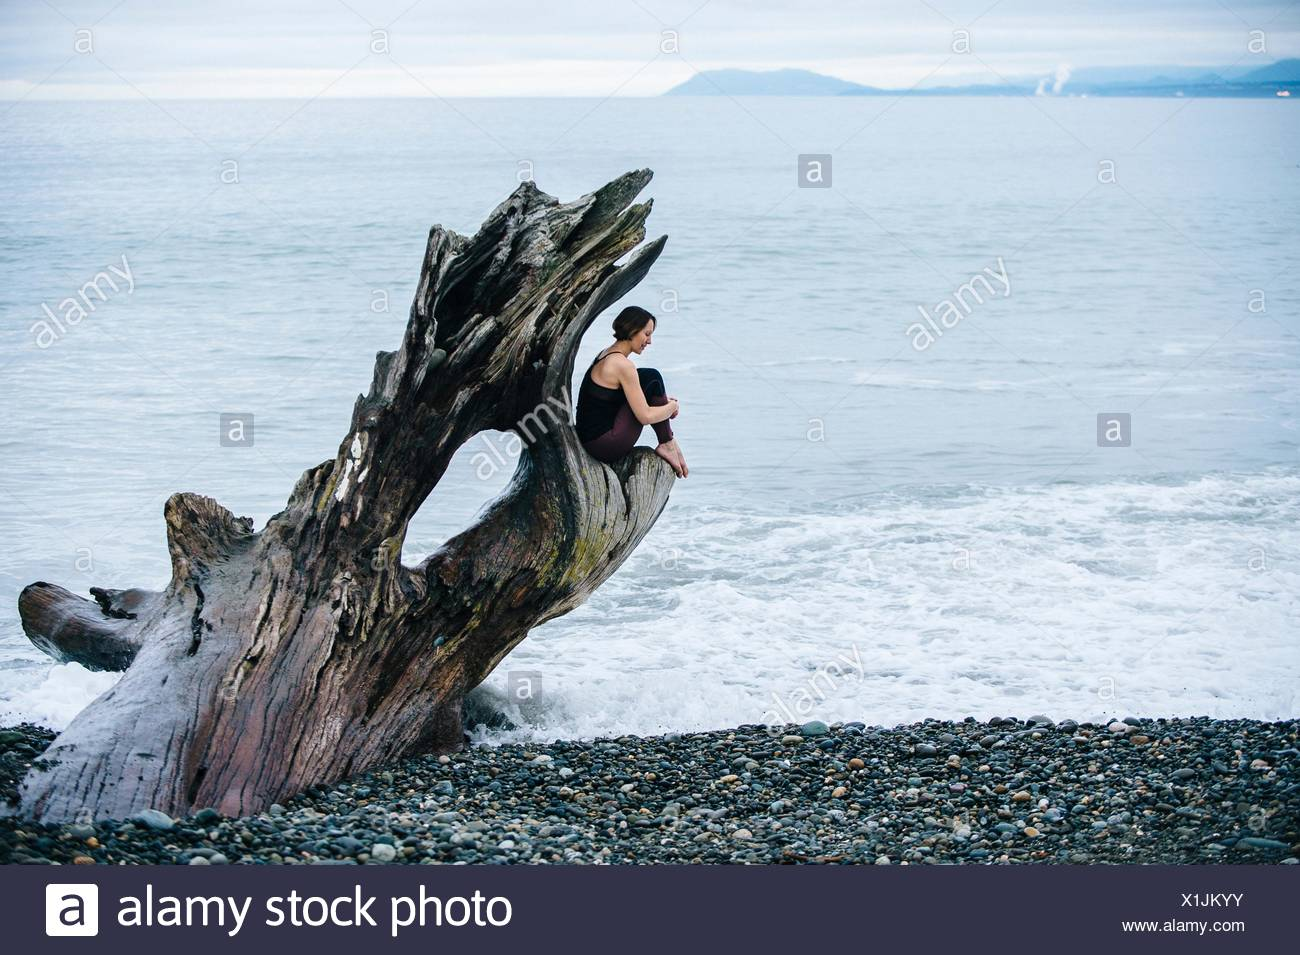 Mature woman sitting on large driftwood tree trunk at beach - Stock Image